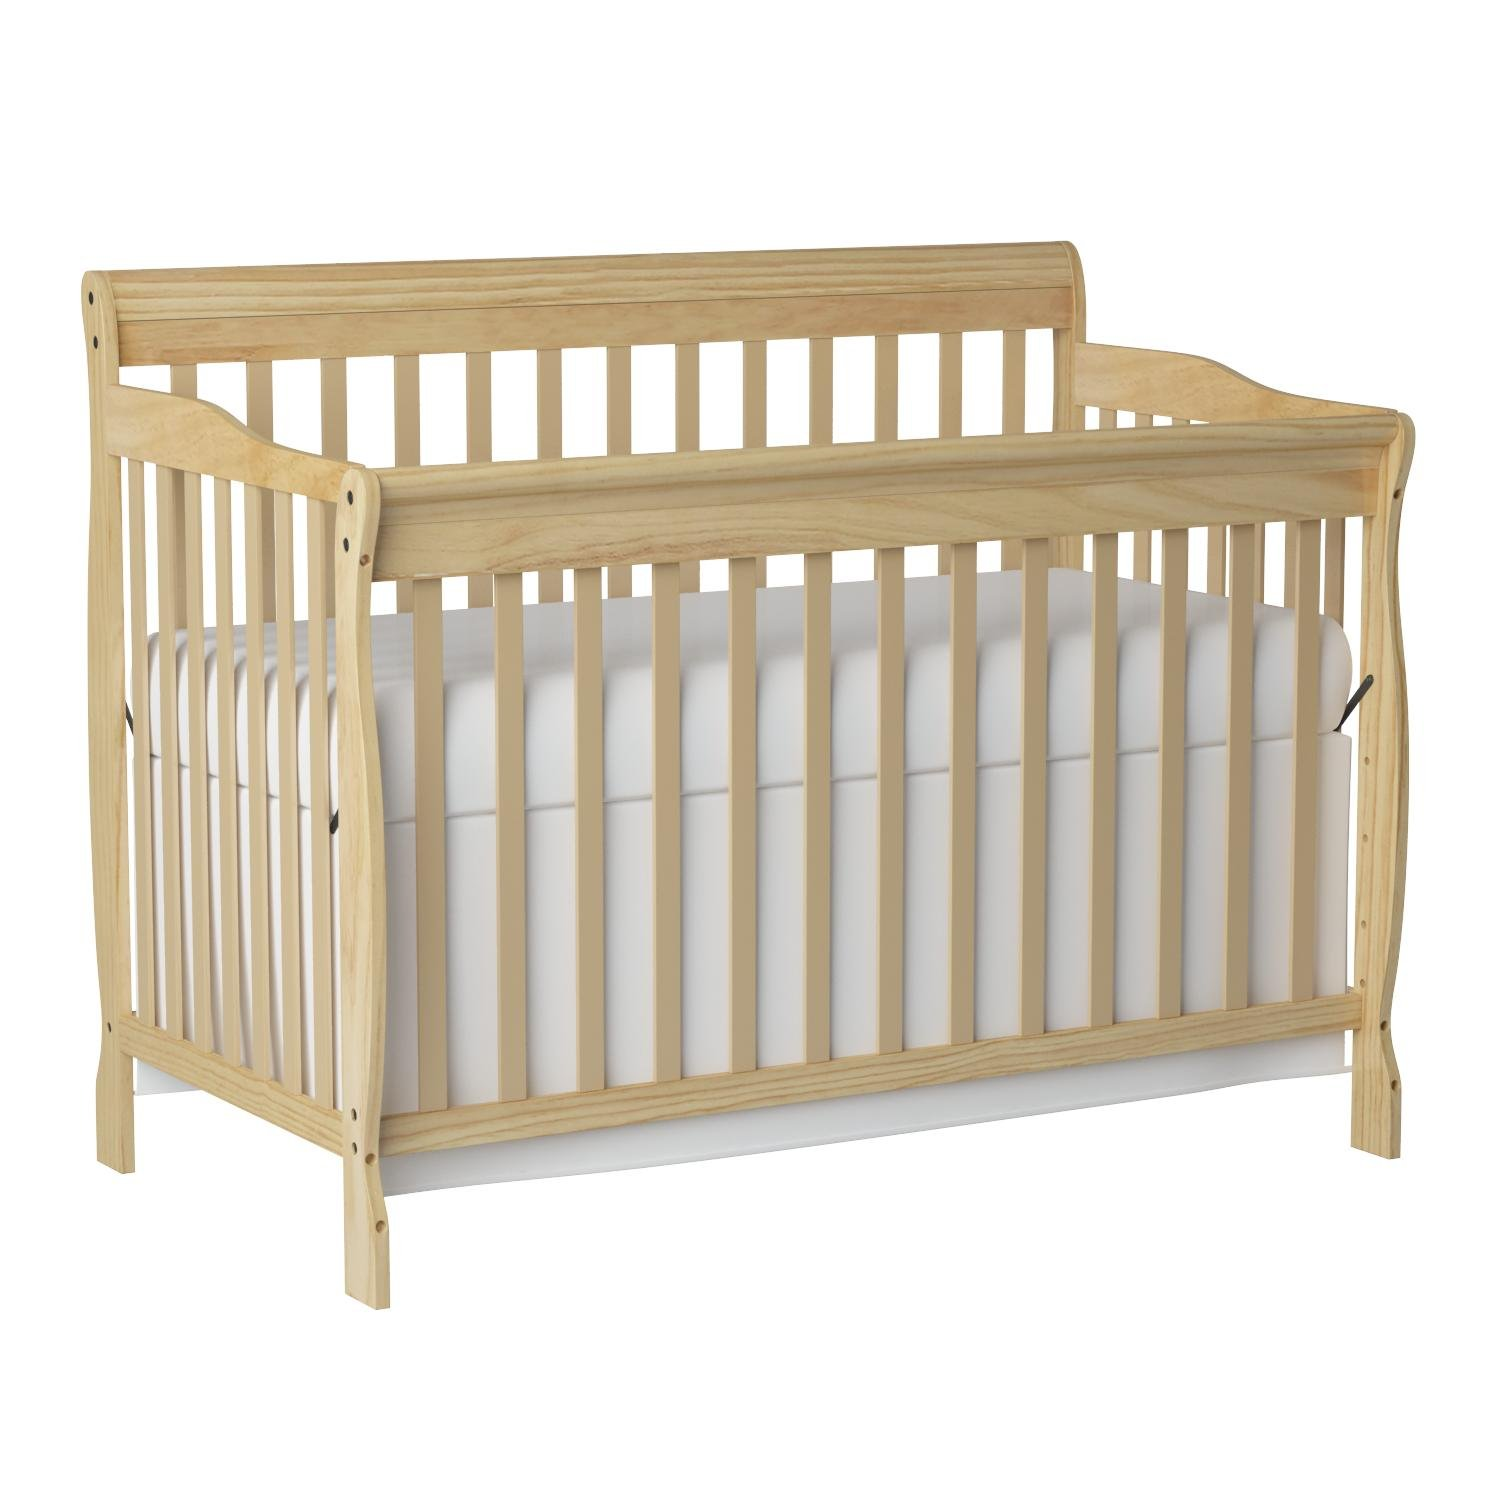 Dream On Me Ashton 5 in 1 Convertible Crib, Natural by Dream On Me (Image #10)